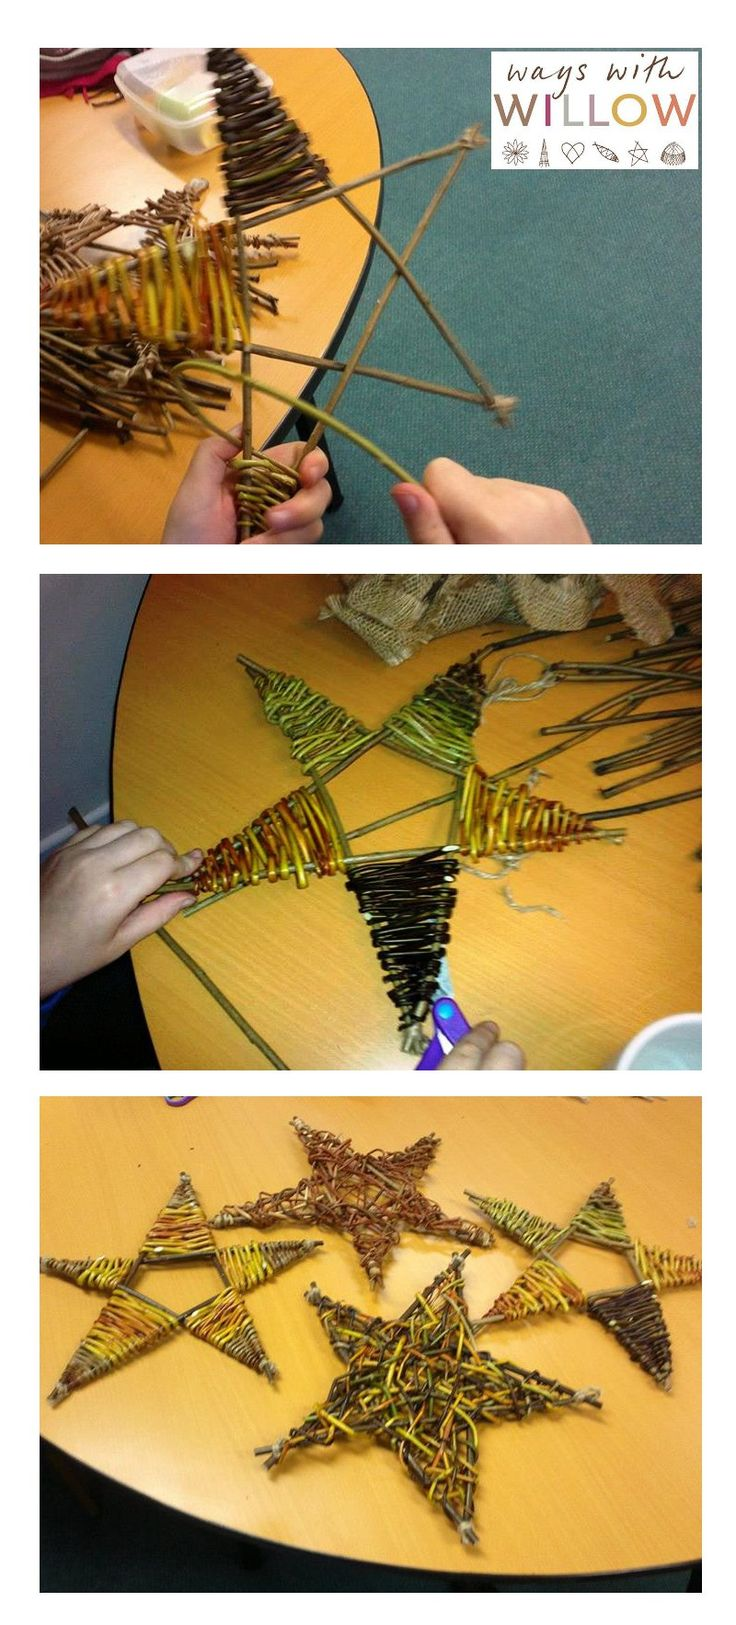 25th November 2014: Half-day willow weaving course: Large woven stars for Christmas - Create gorgeous random woven stars with a variety of willow. www.wayswithwillow.co.uk: